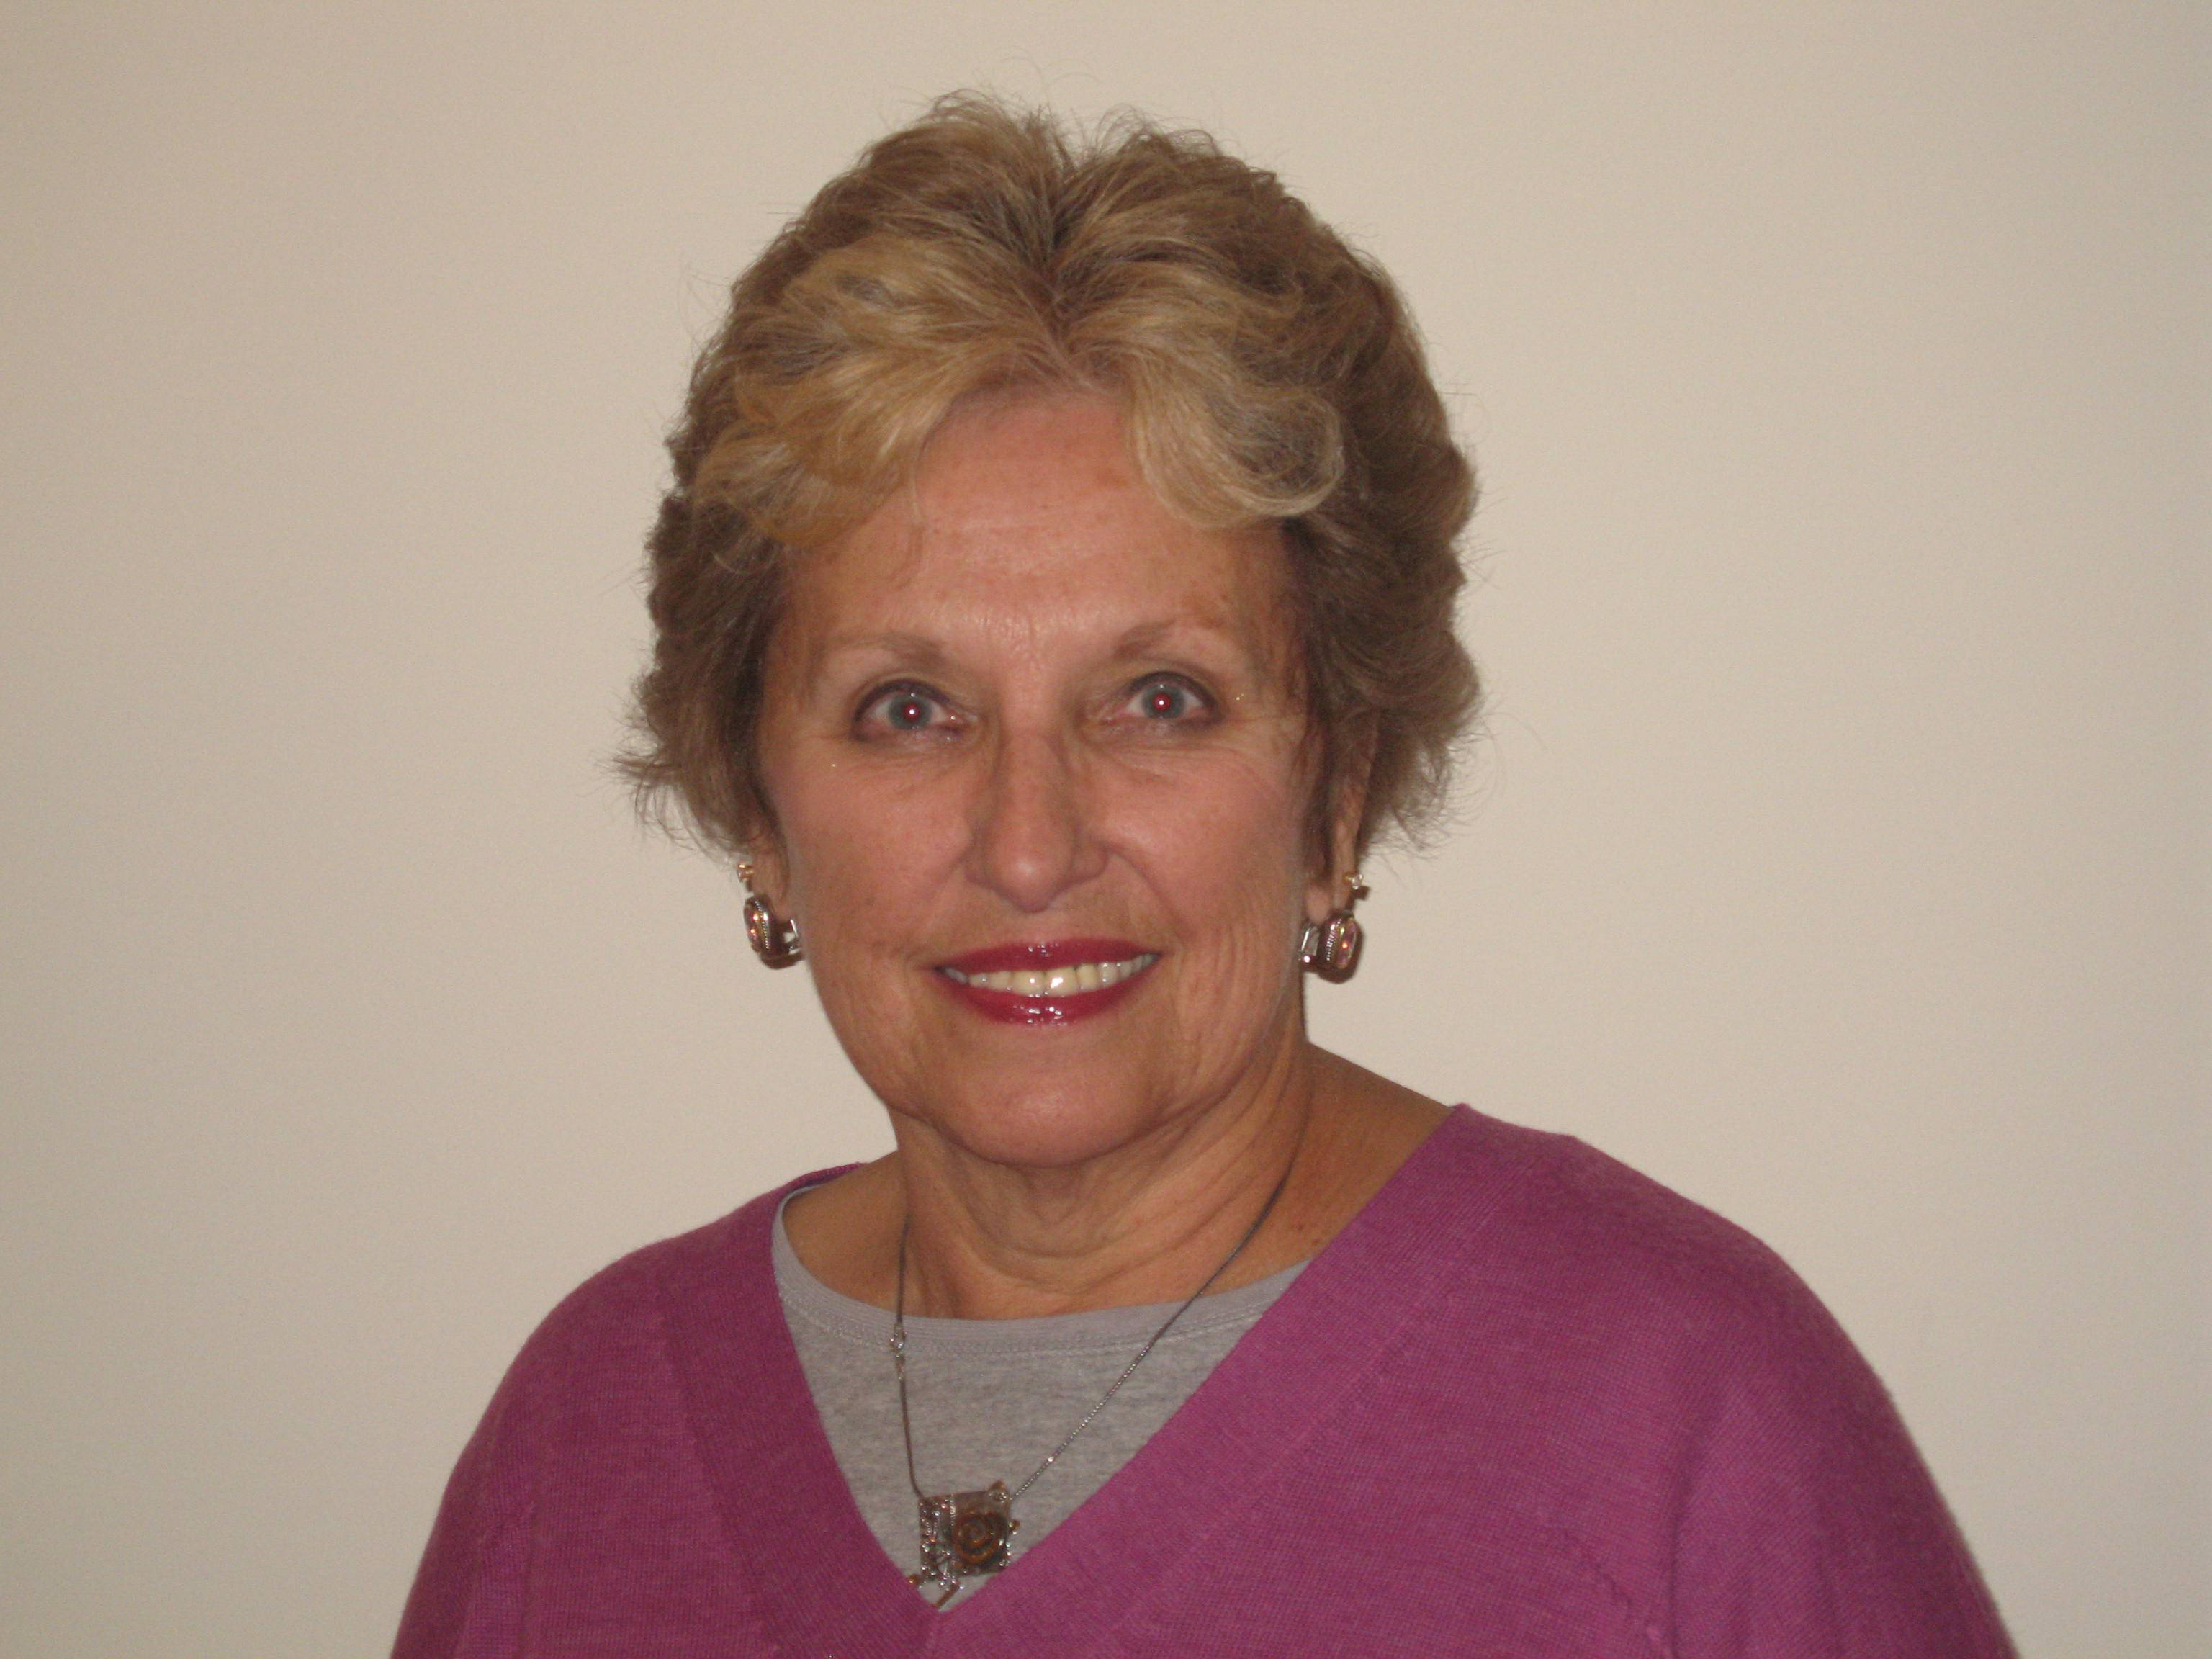 Doris M. Benes, running for Algonquin Area library